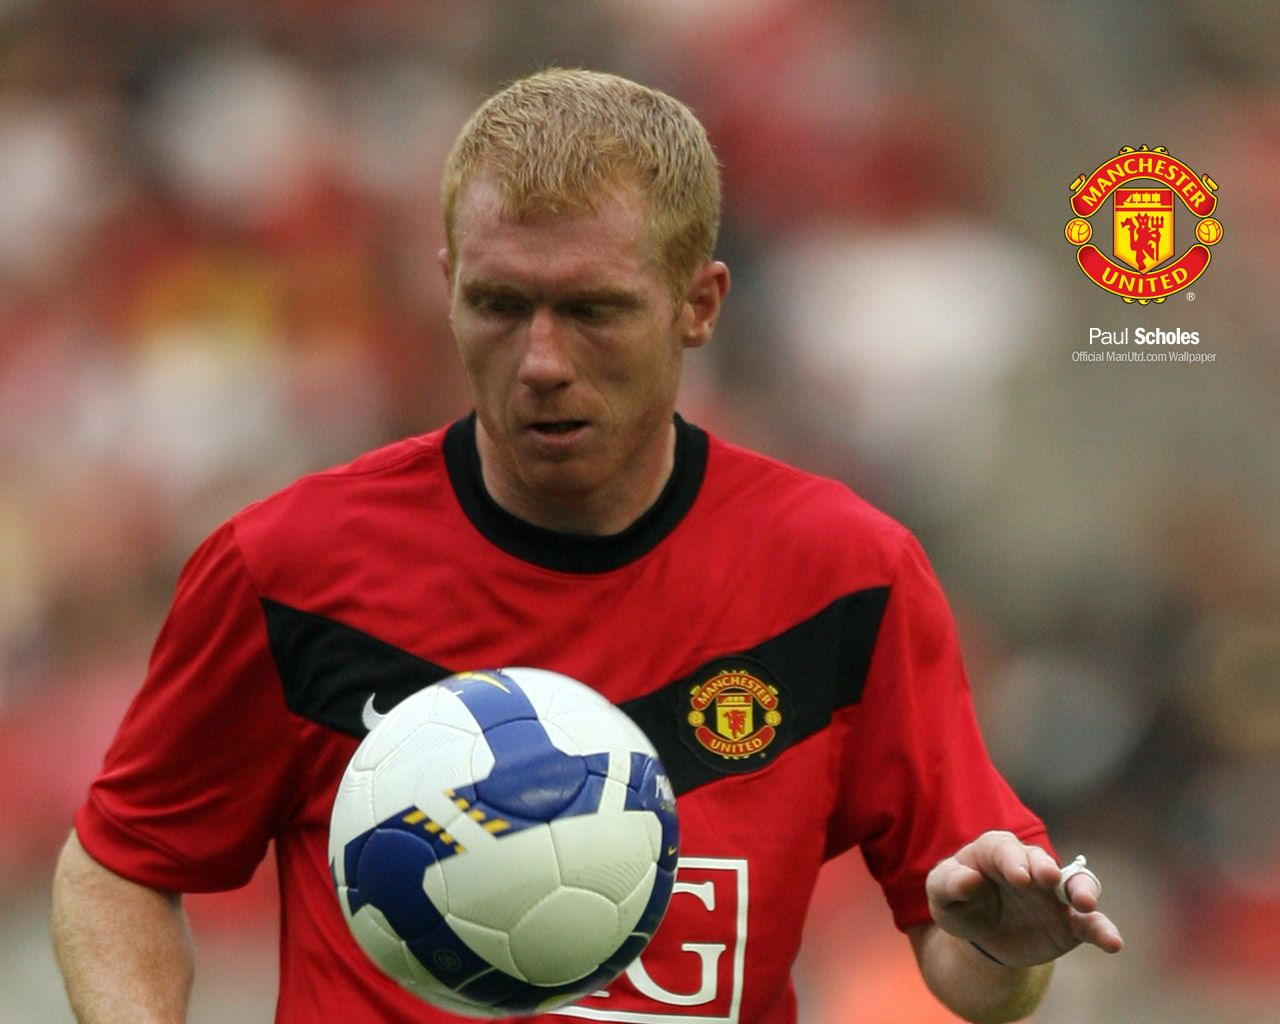 18 PaulScholes - Paul Scholes has announced retirement